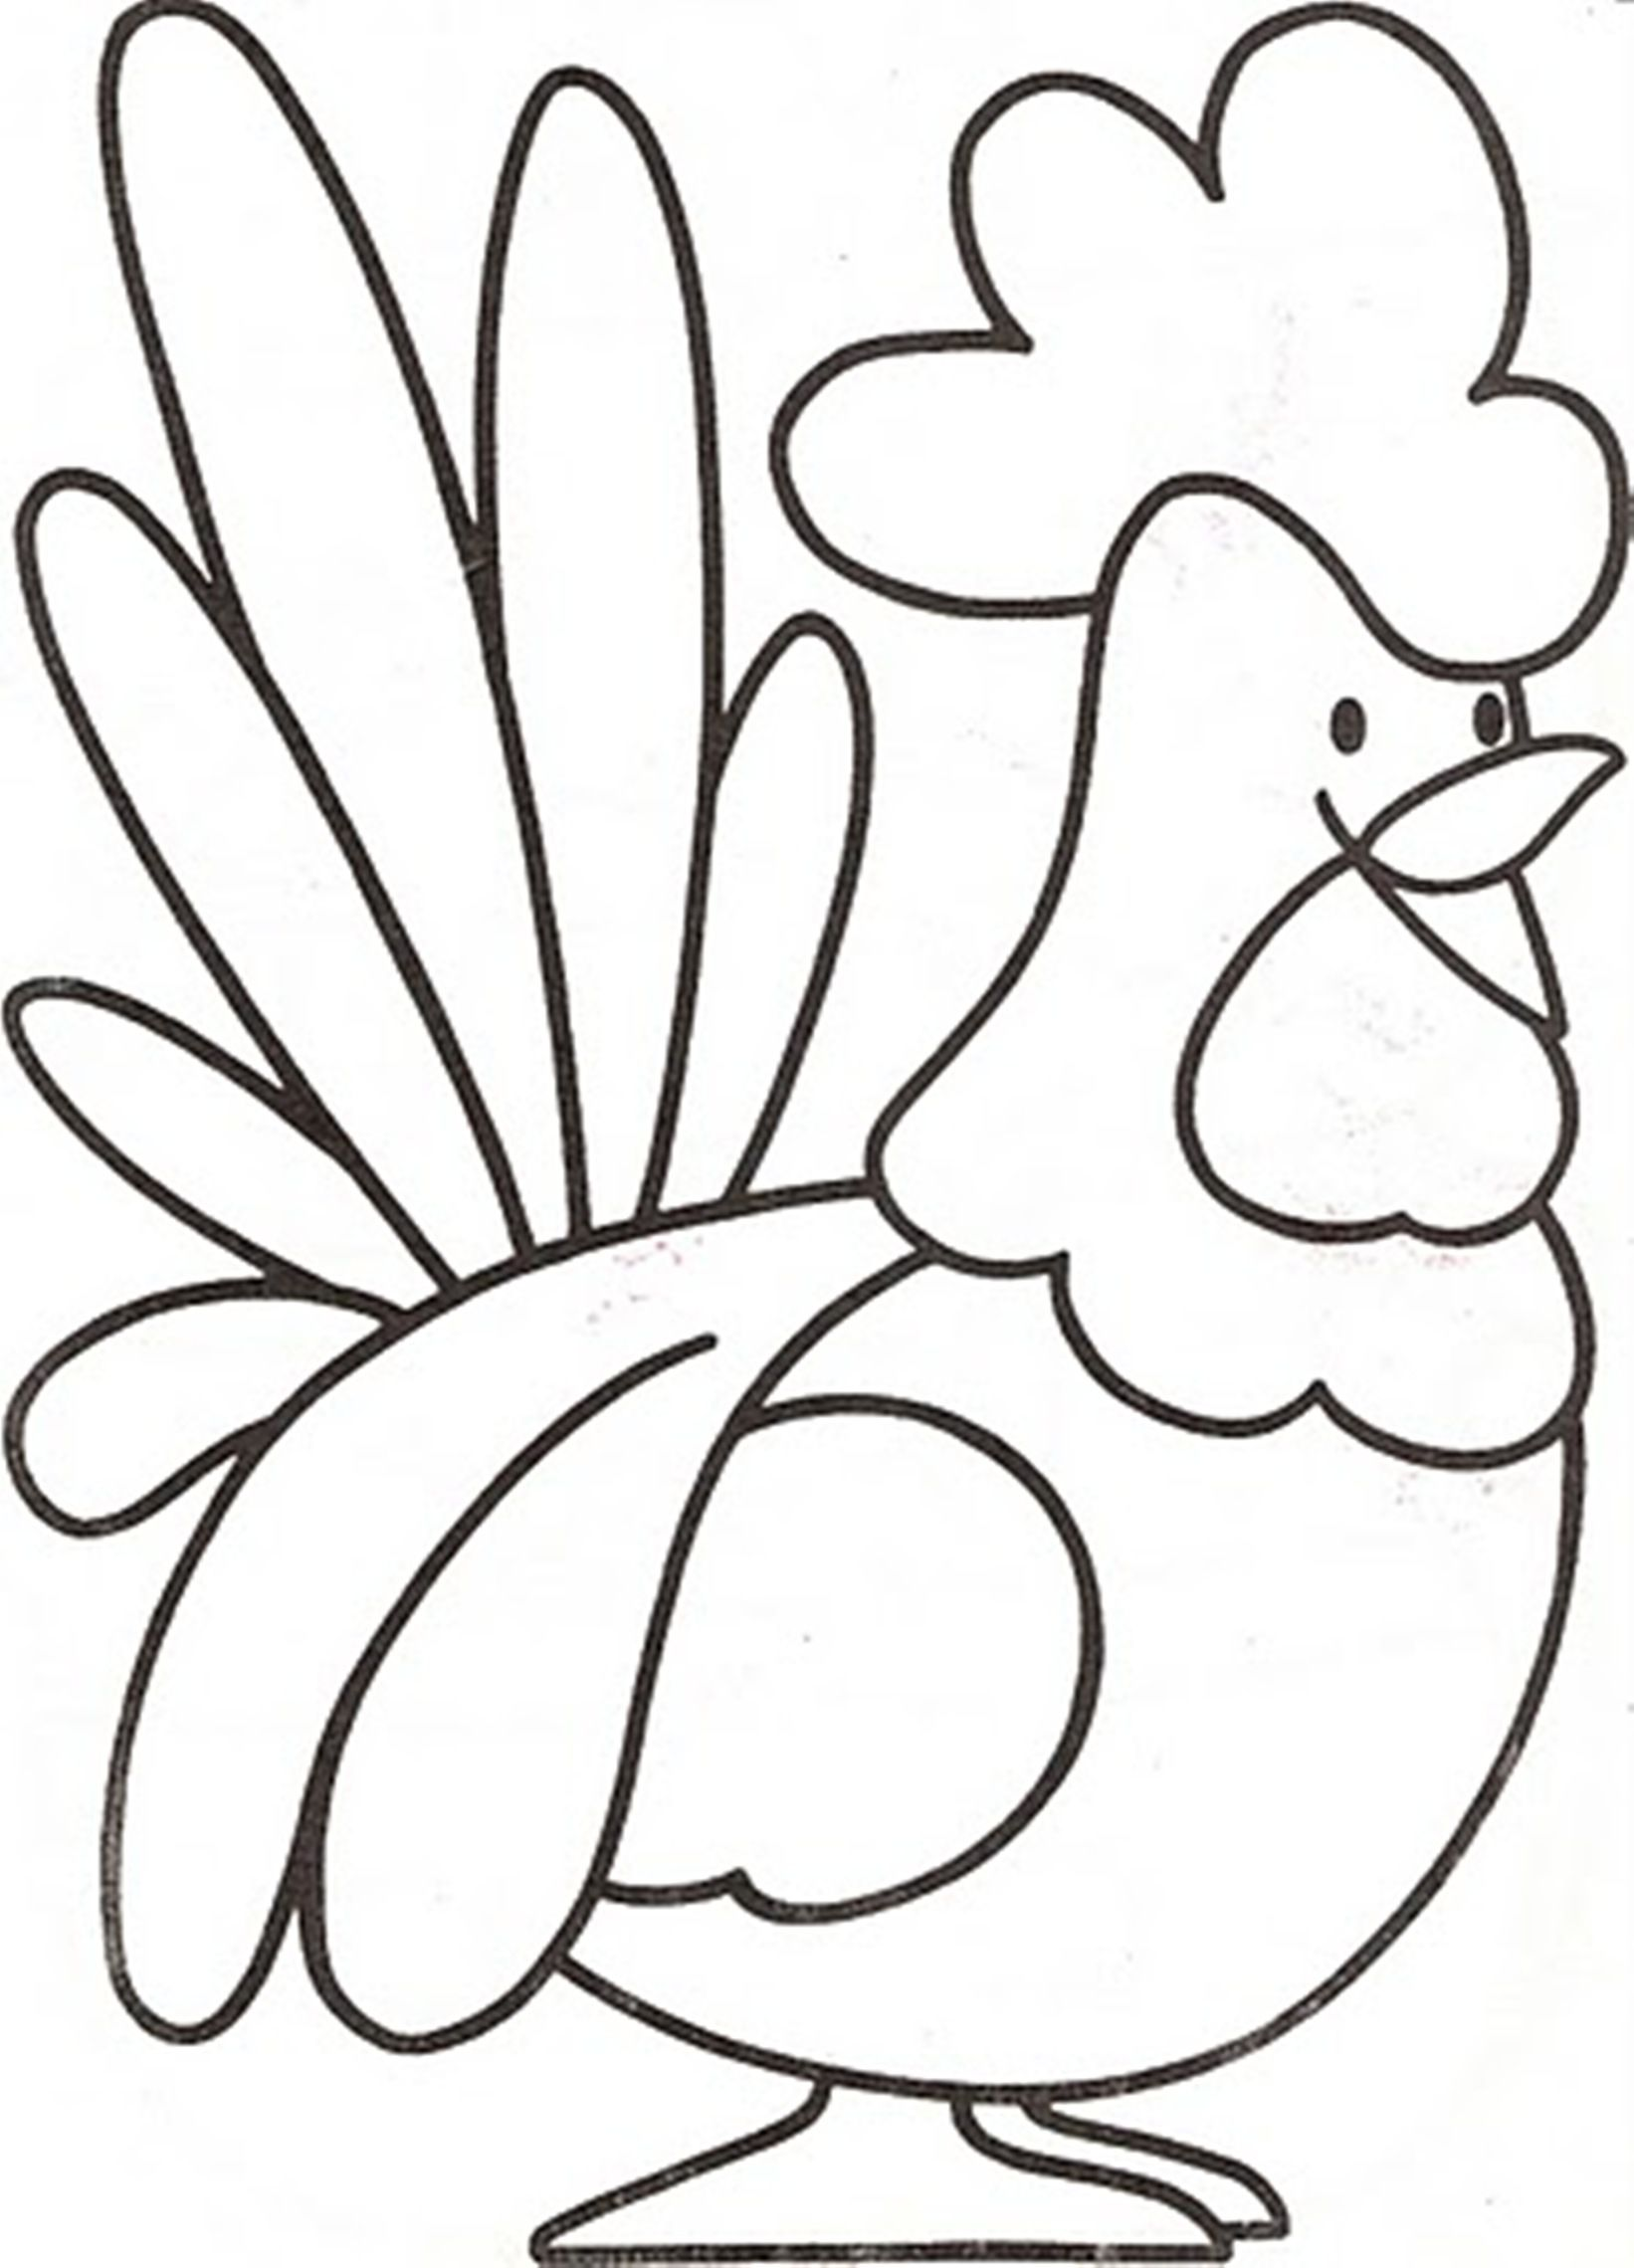 animal download and print preschool farm animal coloring pages - Animal Coloring Pages For Preschoolers